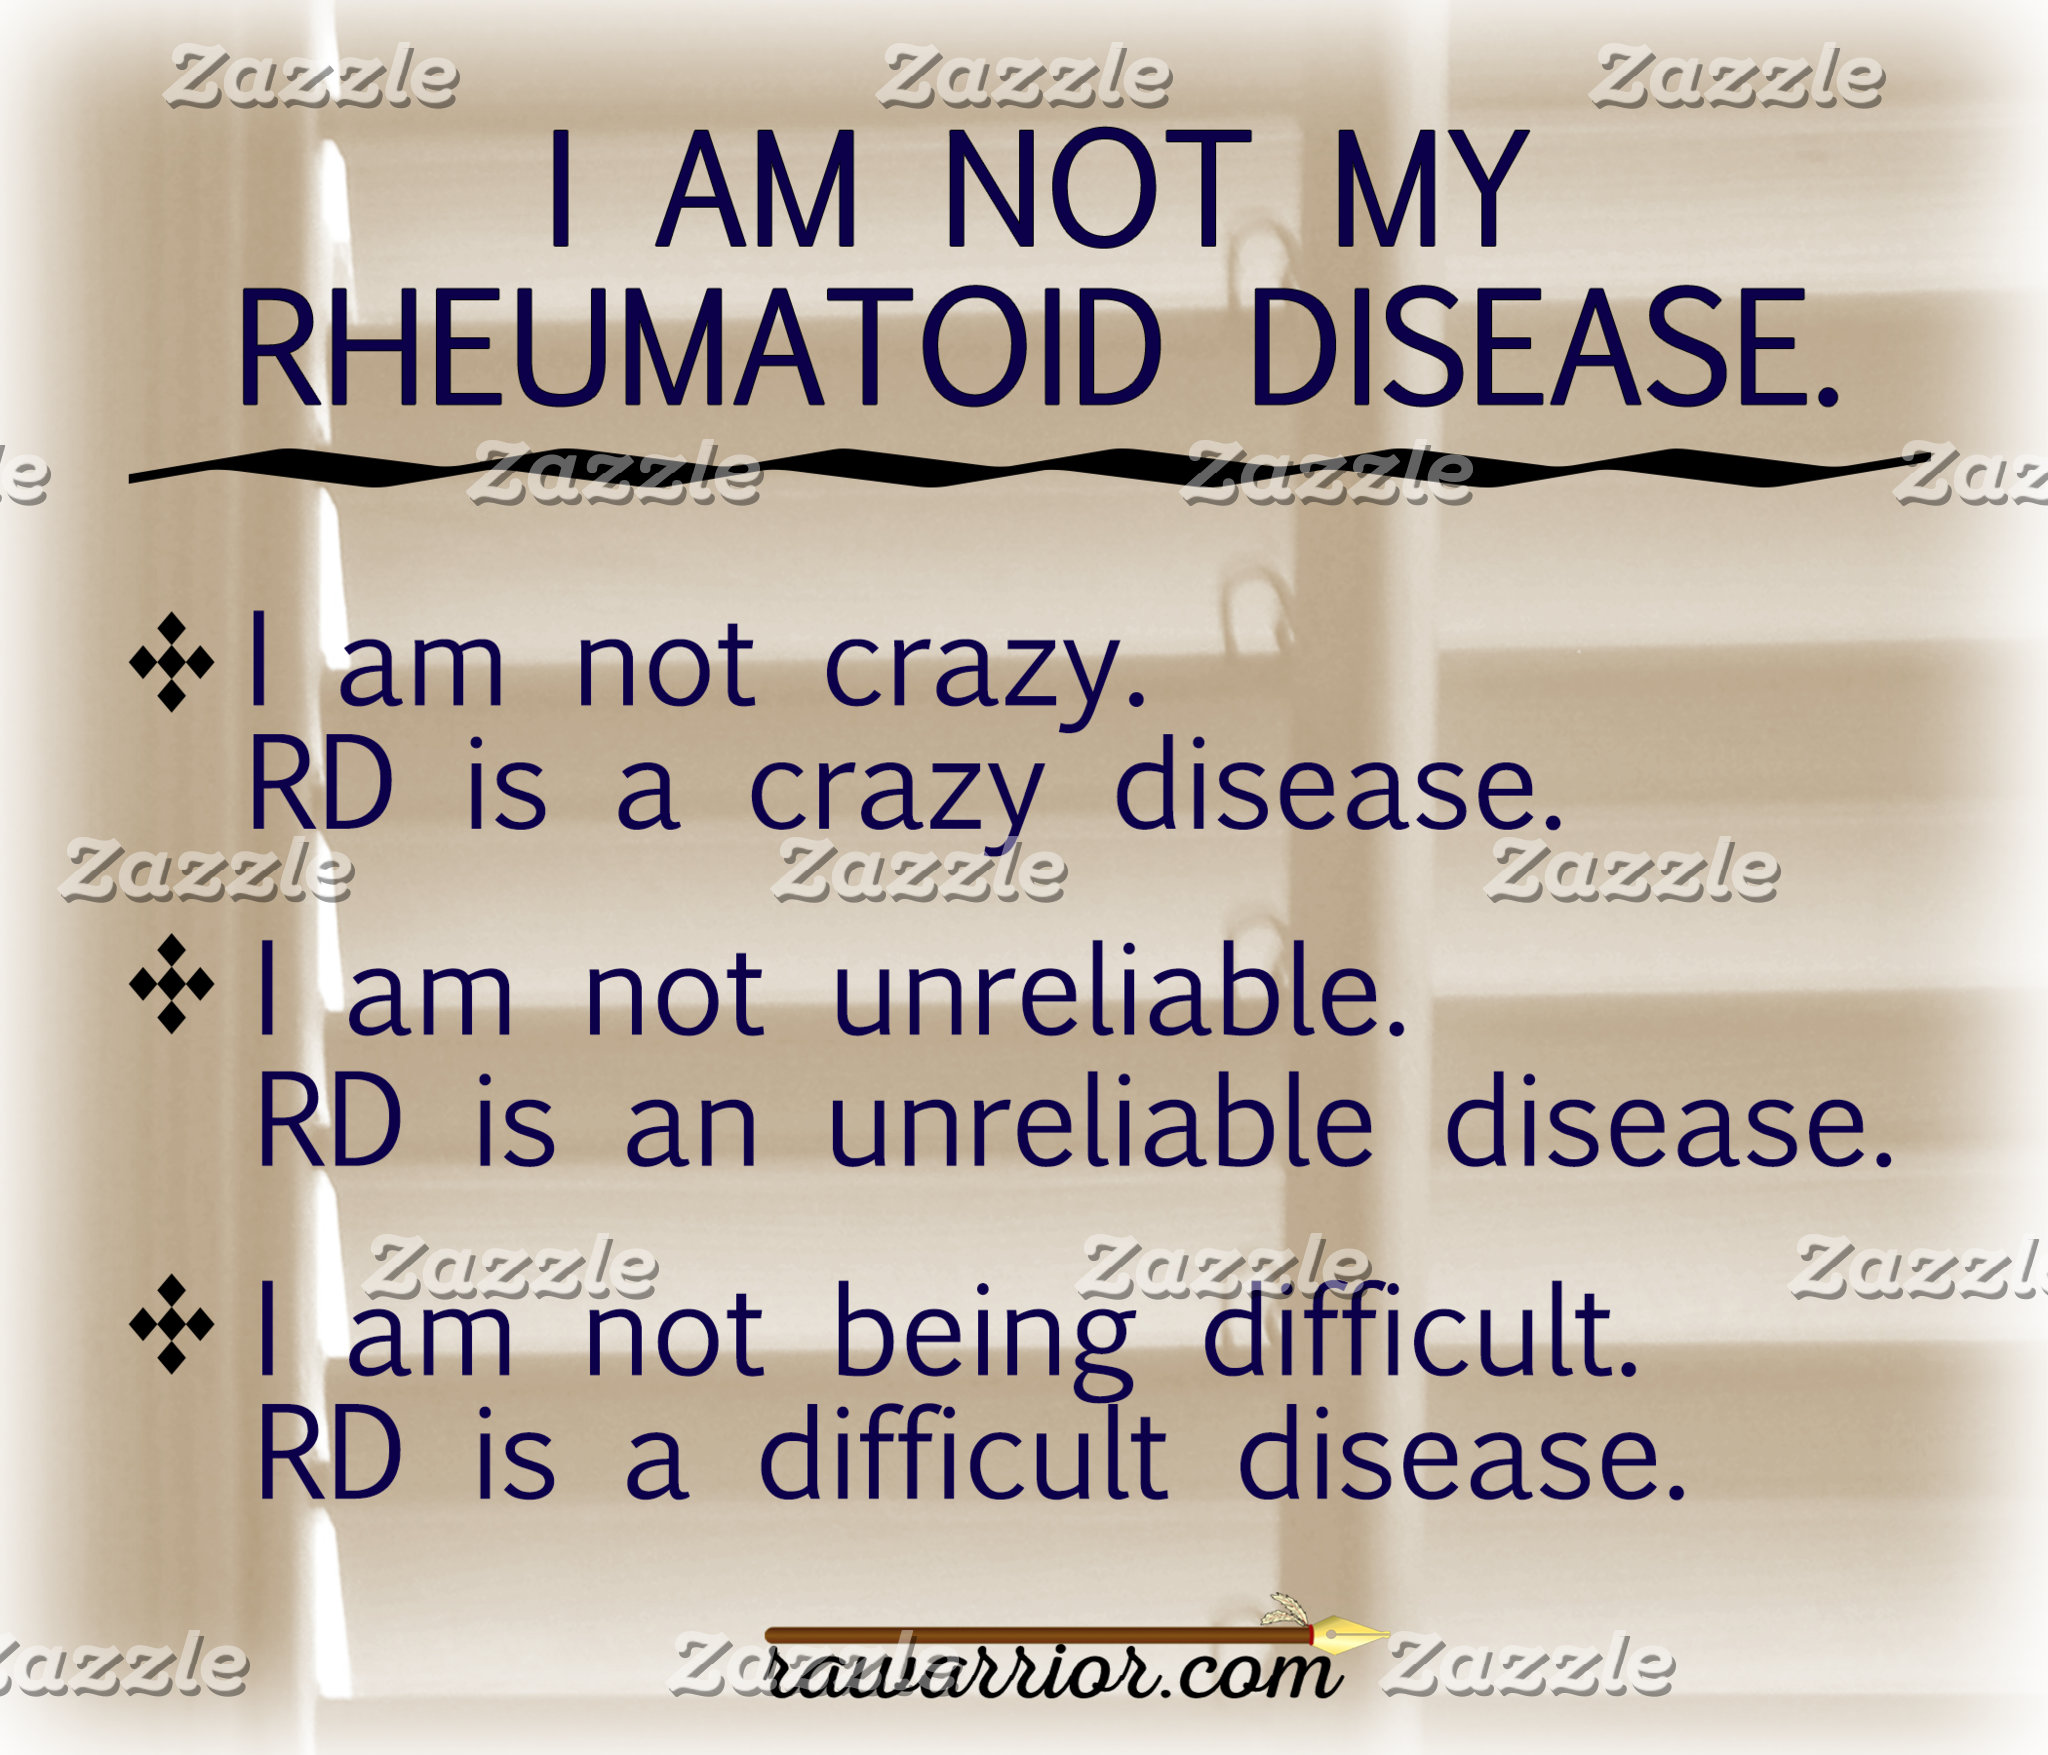 I am not my RD